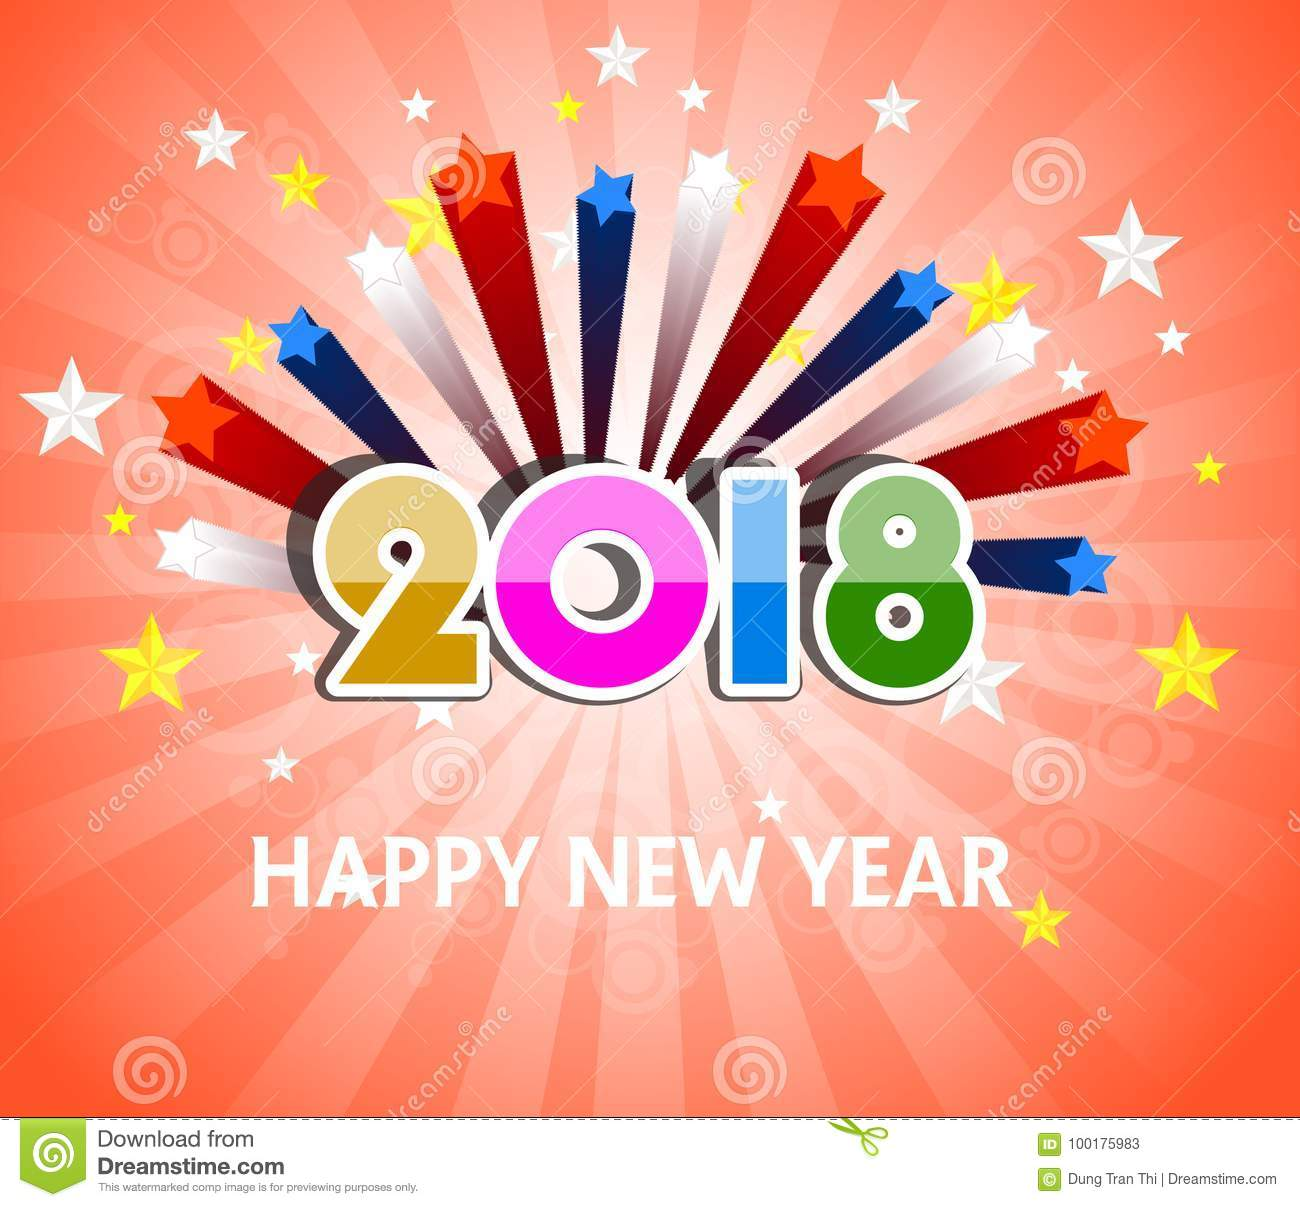 download happy new year 2018 with firework background stock vector illustration of holiday festival